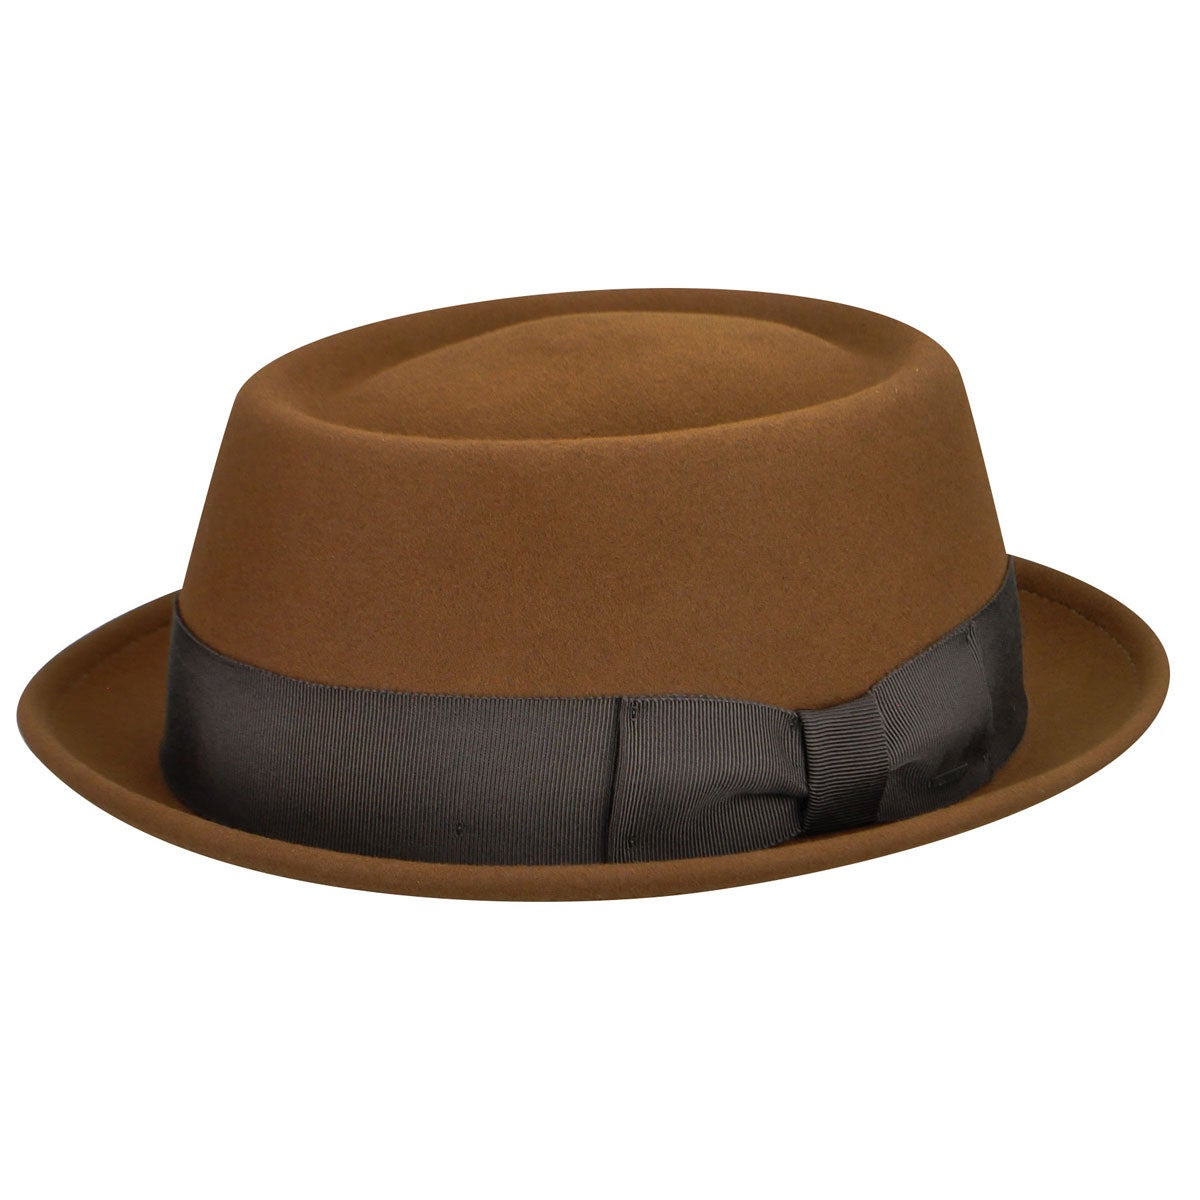 1940s Style Mens Hats Darron LiteFelt reg Pork Pie $80.00 AT vintagedancer.com